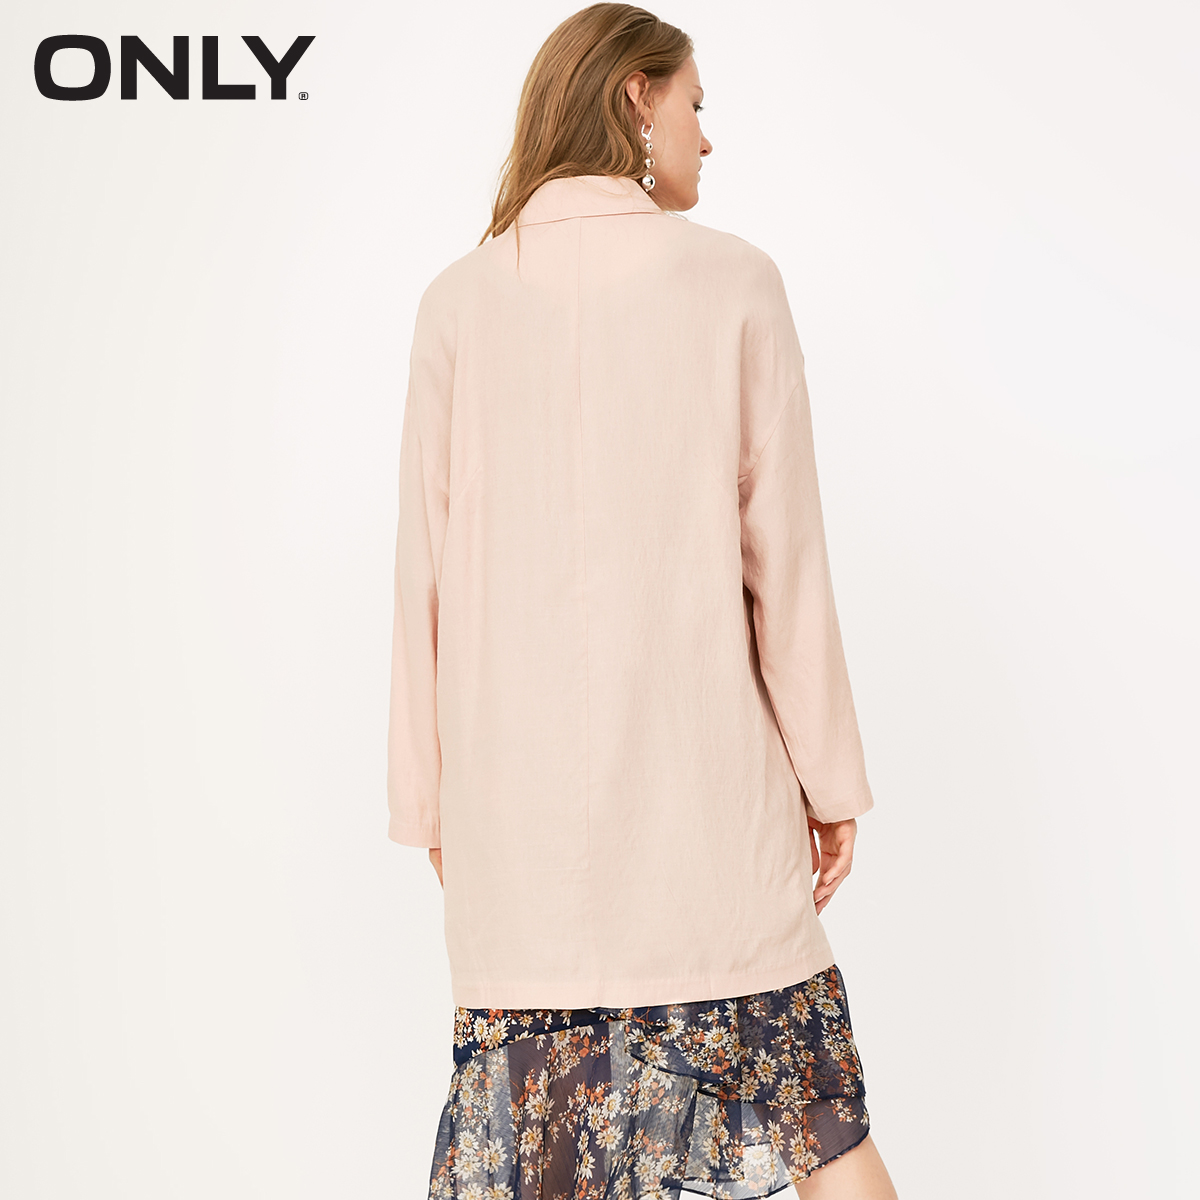 ONLY 2019 Spring Summer New Women's Double-Breasted Medium Length Blazer |118108529